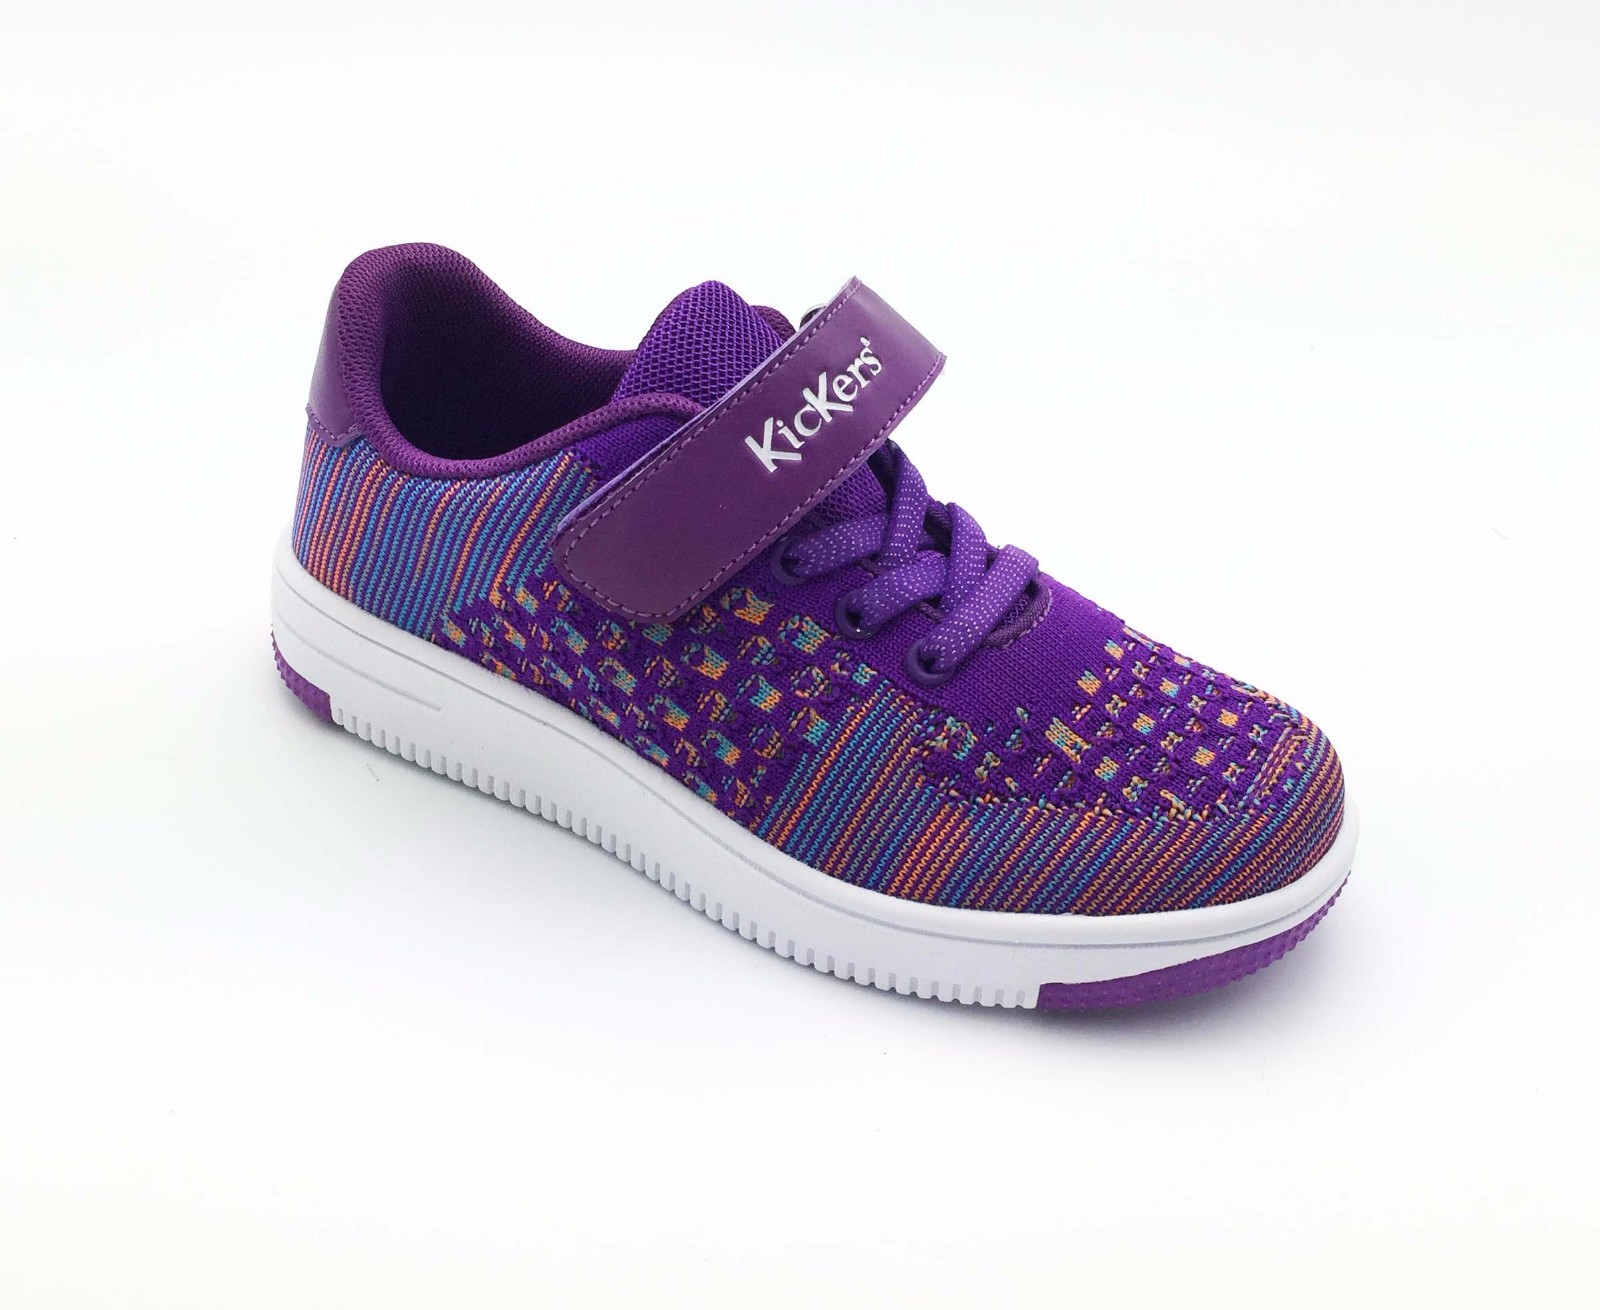 Kids Breathable shoes Spring children Casual boys and girls Lace-up Flyknit Fashion shoes Manufacturers, Kids Breathable shoes Spring children Casual boys and girls Lace-up Flyknit Fashion shoes Factory, Supply Kids Breathable shoes Spring children Casual boys and girls Lace-up Flyknit Fashion shoes